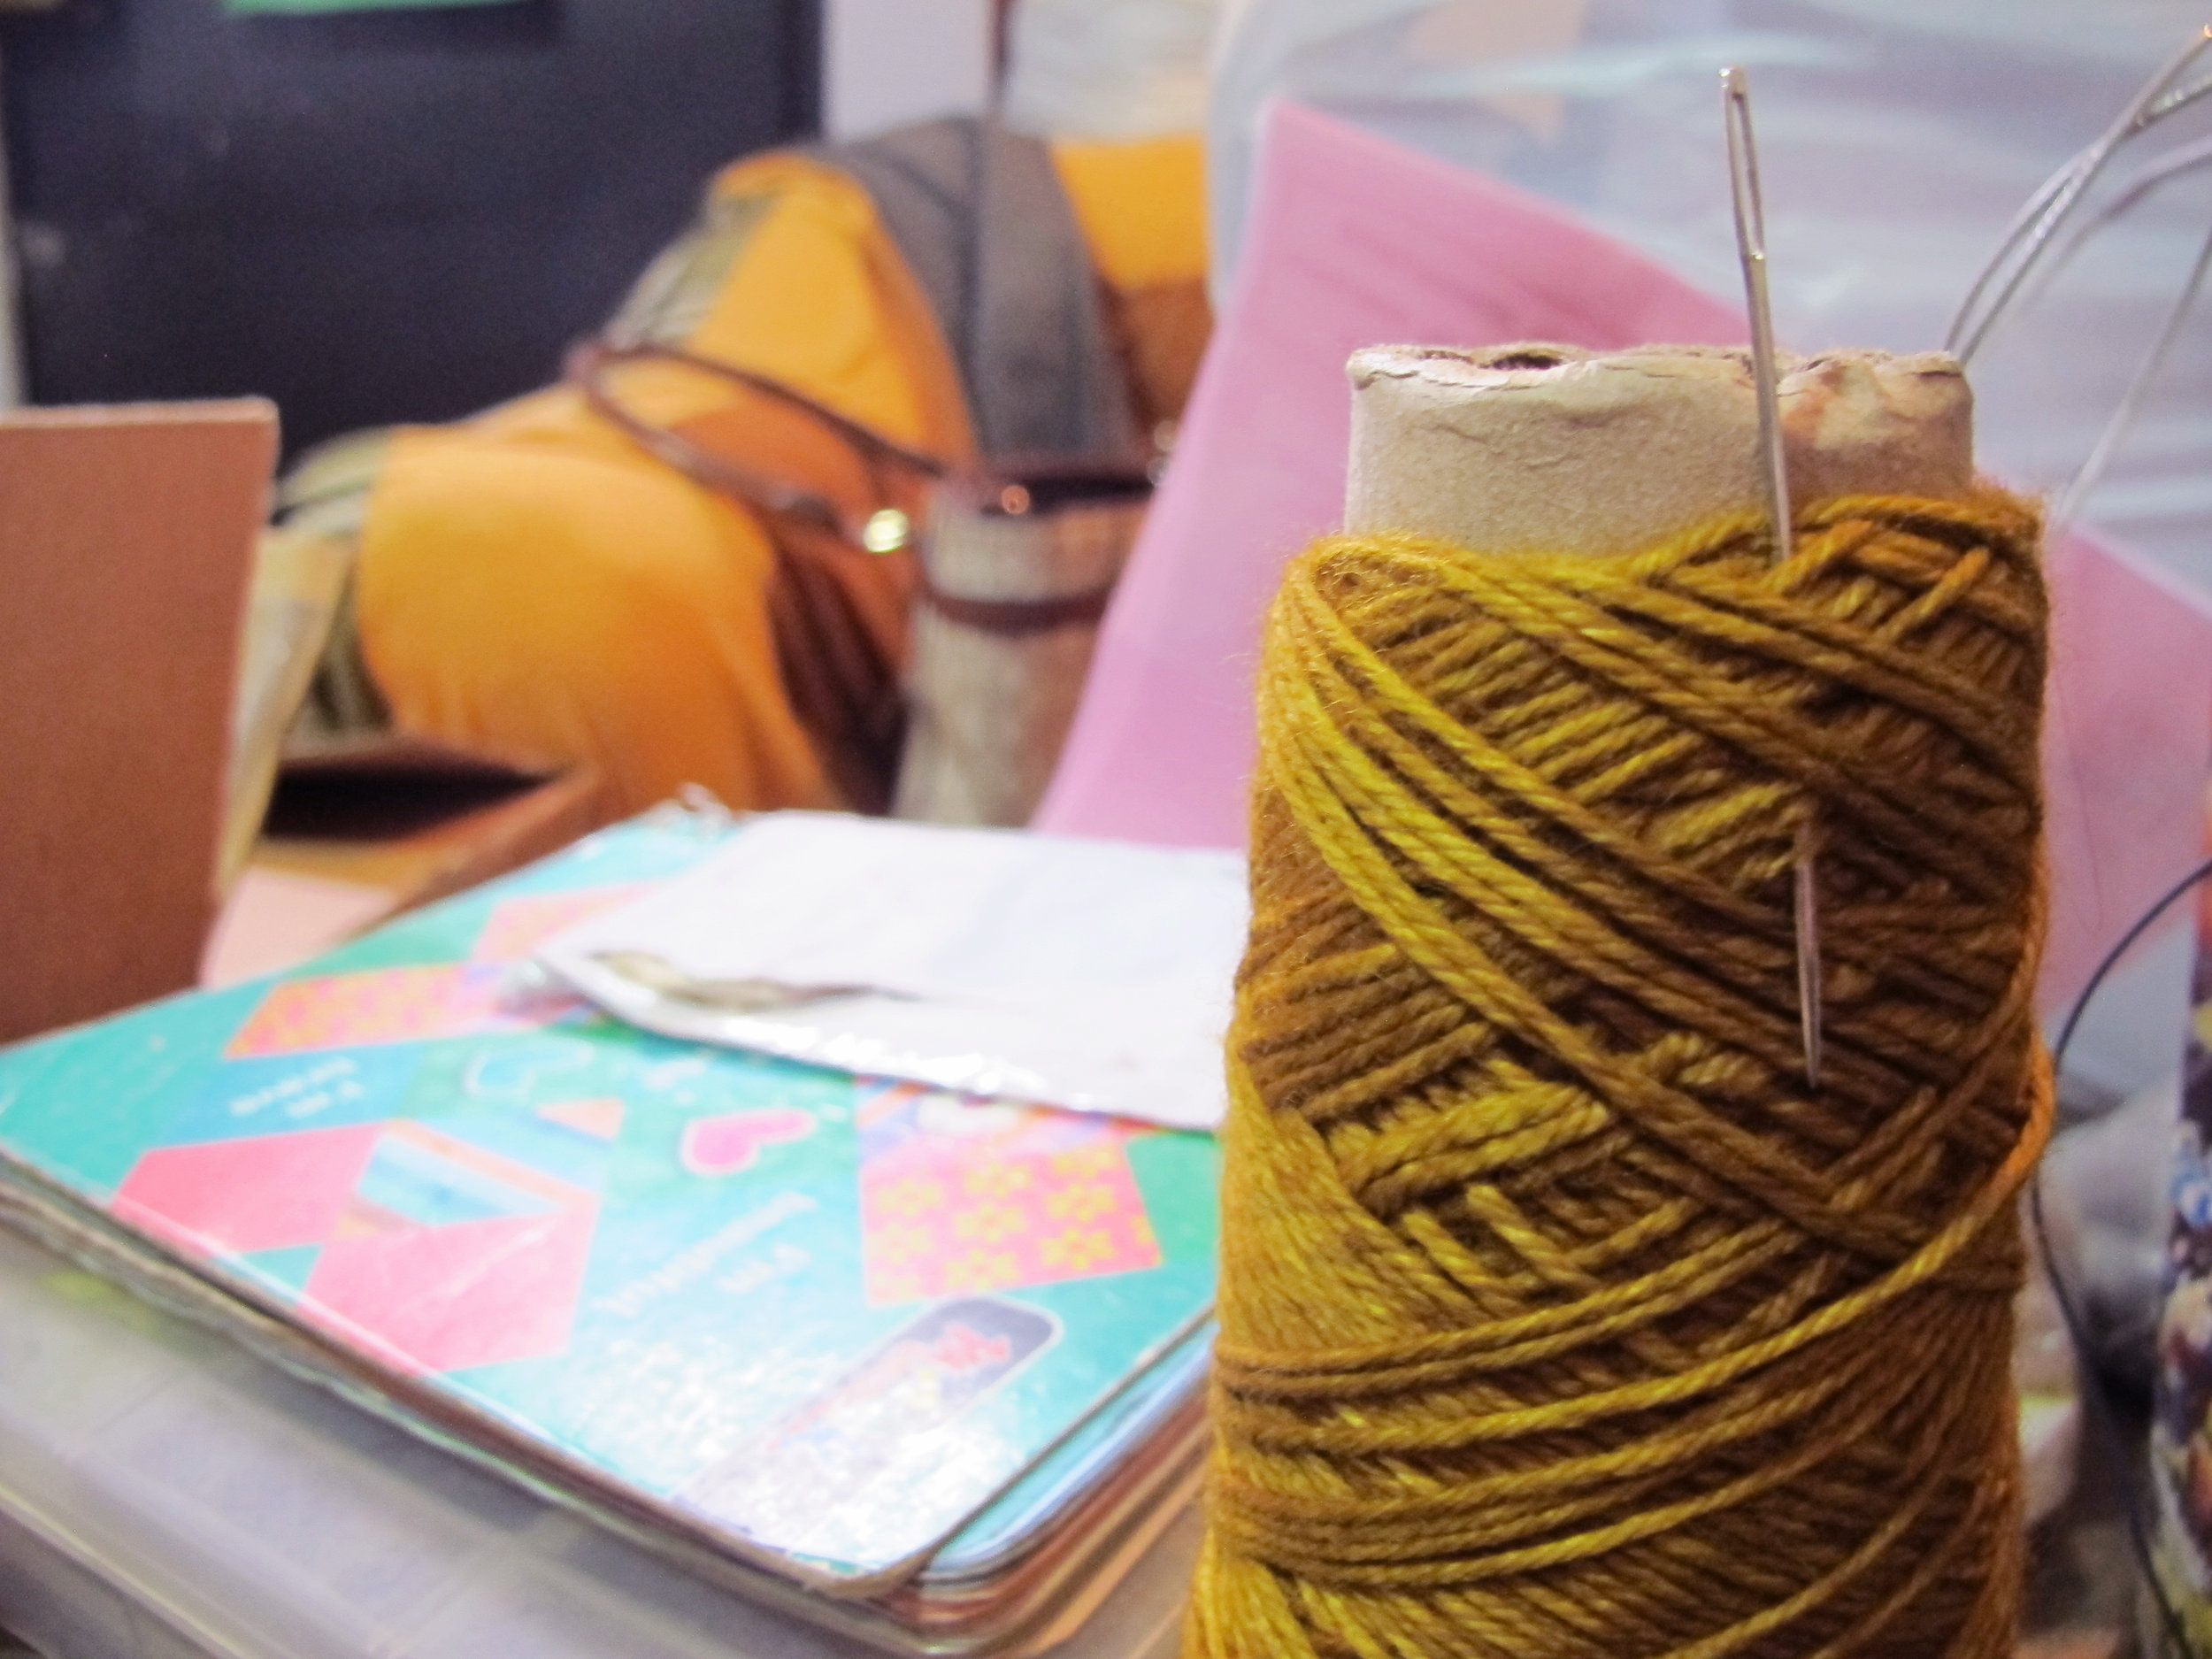 Making beautiful knitwear ain't easy. -